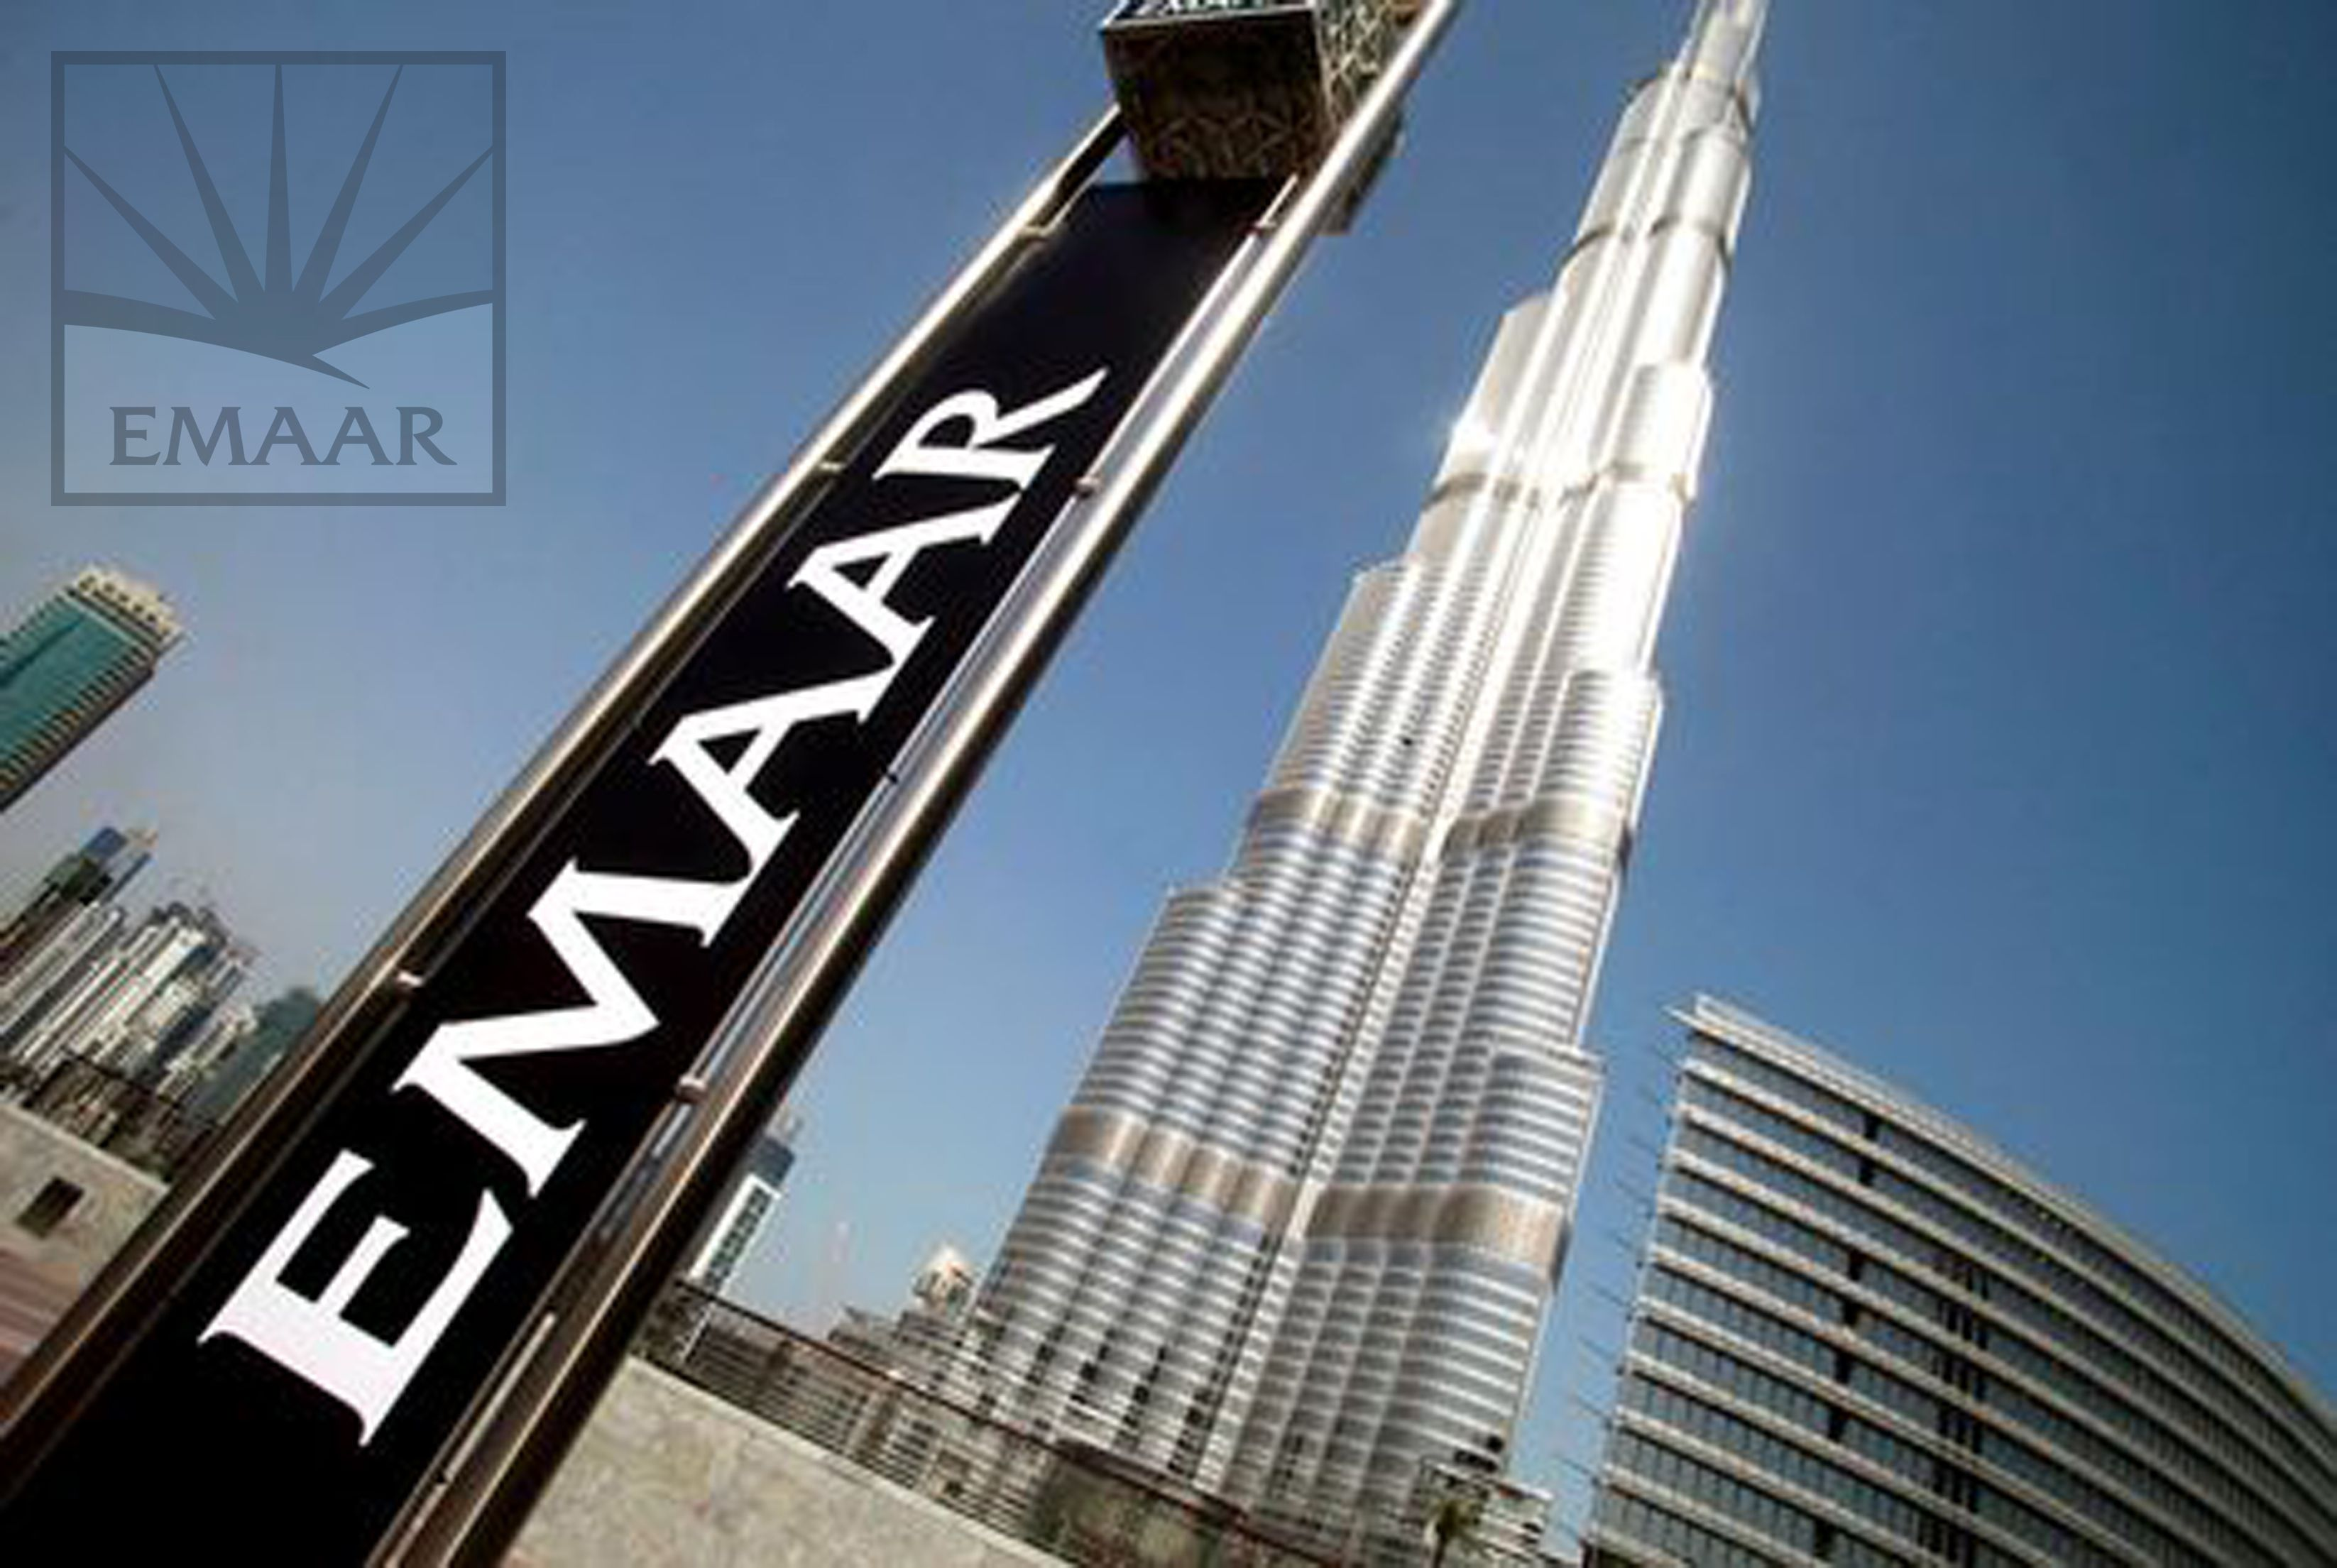 Emaar Hospitality Group Announced On Monday That It Will Be